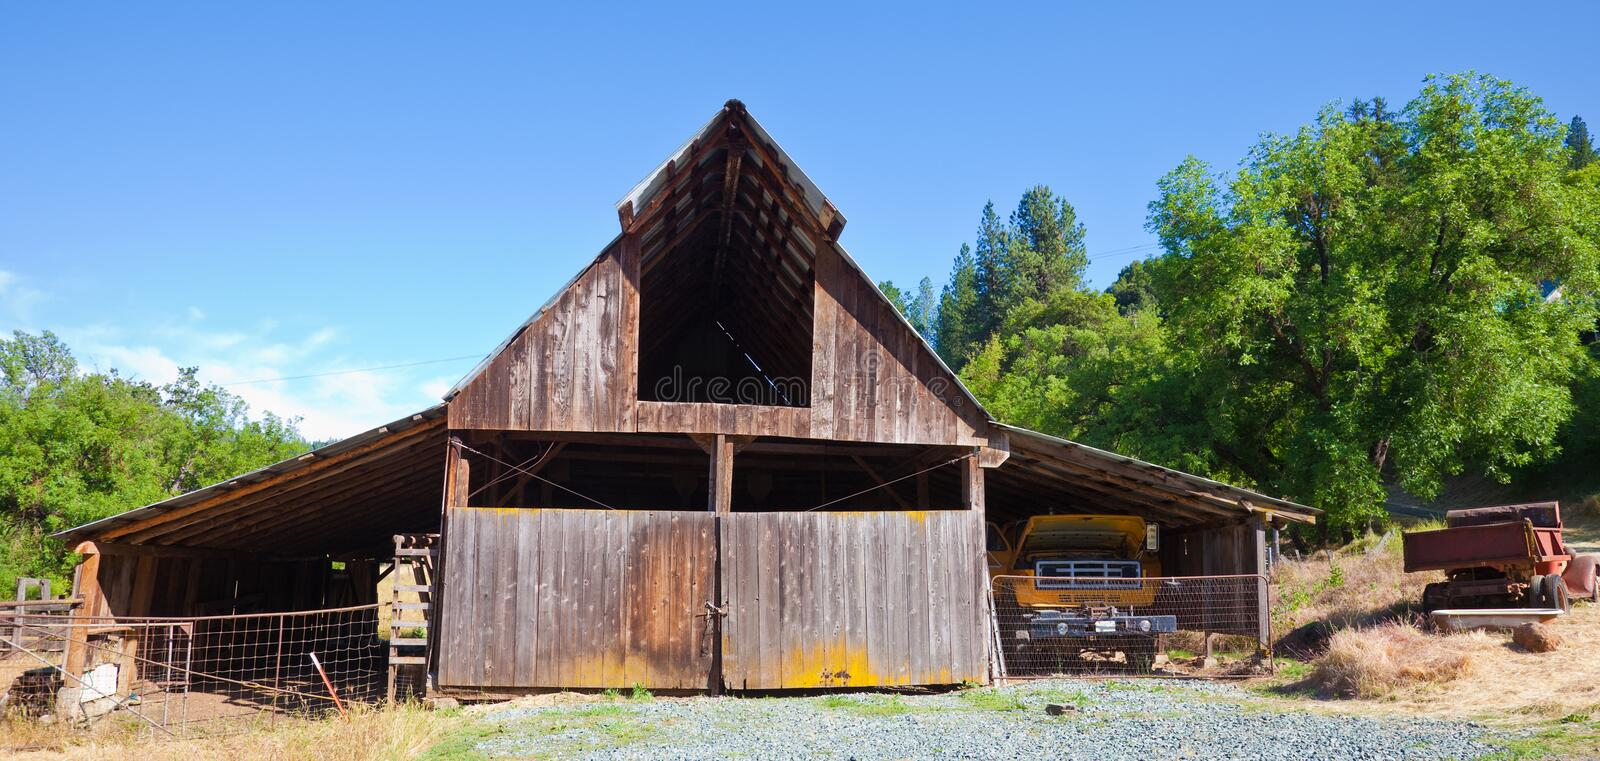 Download Very Old Barn stock image. Image of wood, nature, sutter - 16772561